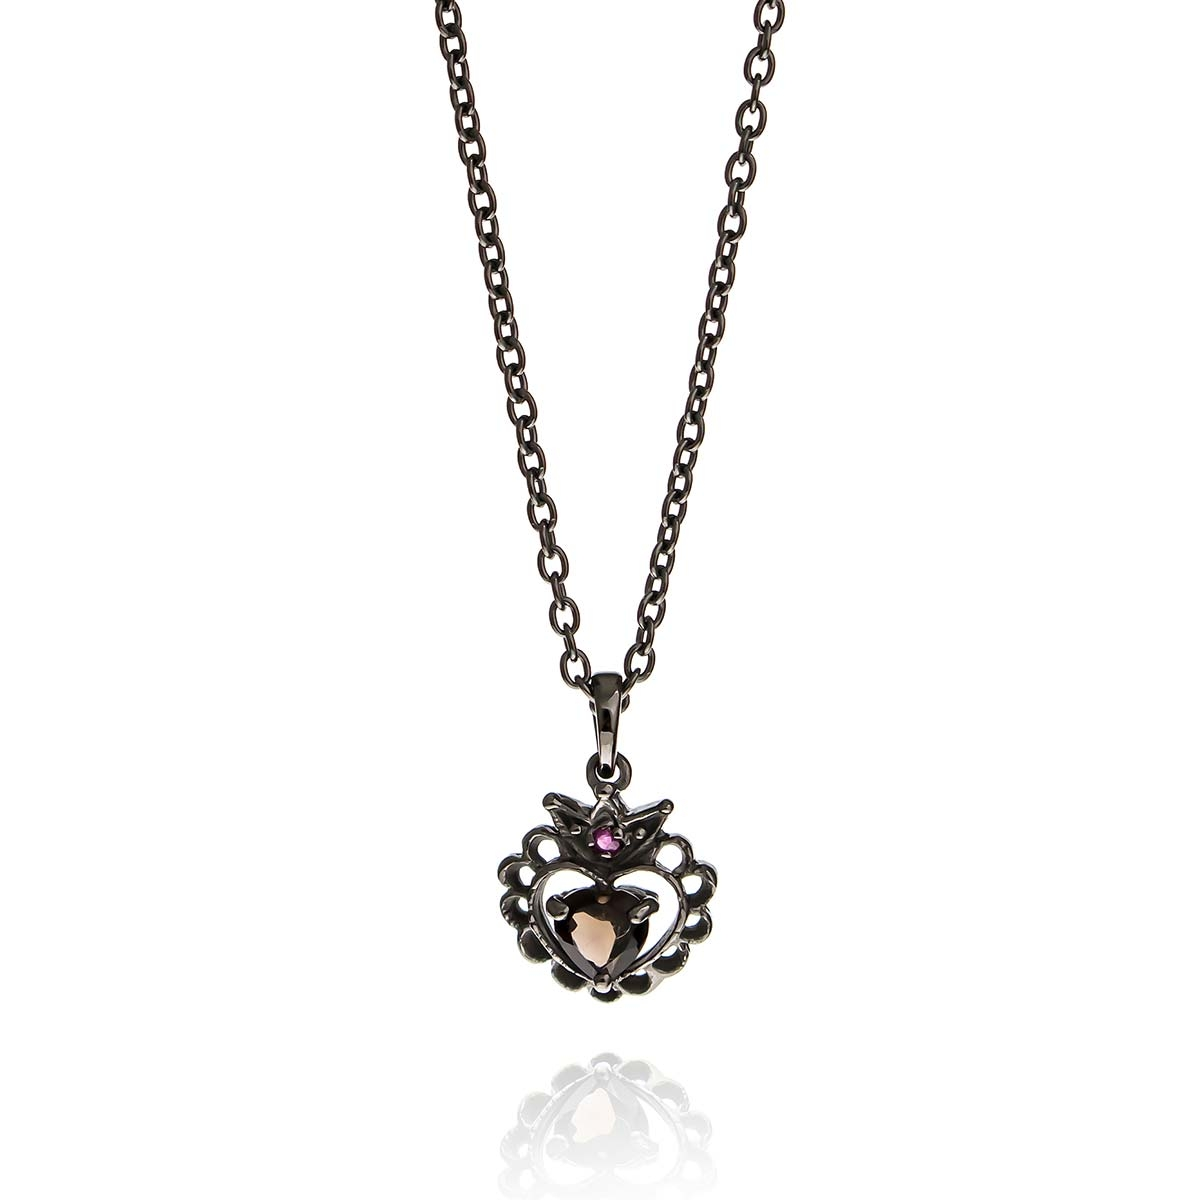 Allure Oxidised Plated Smokey Quartz Heart Crown Pendant Necklace